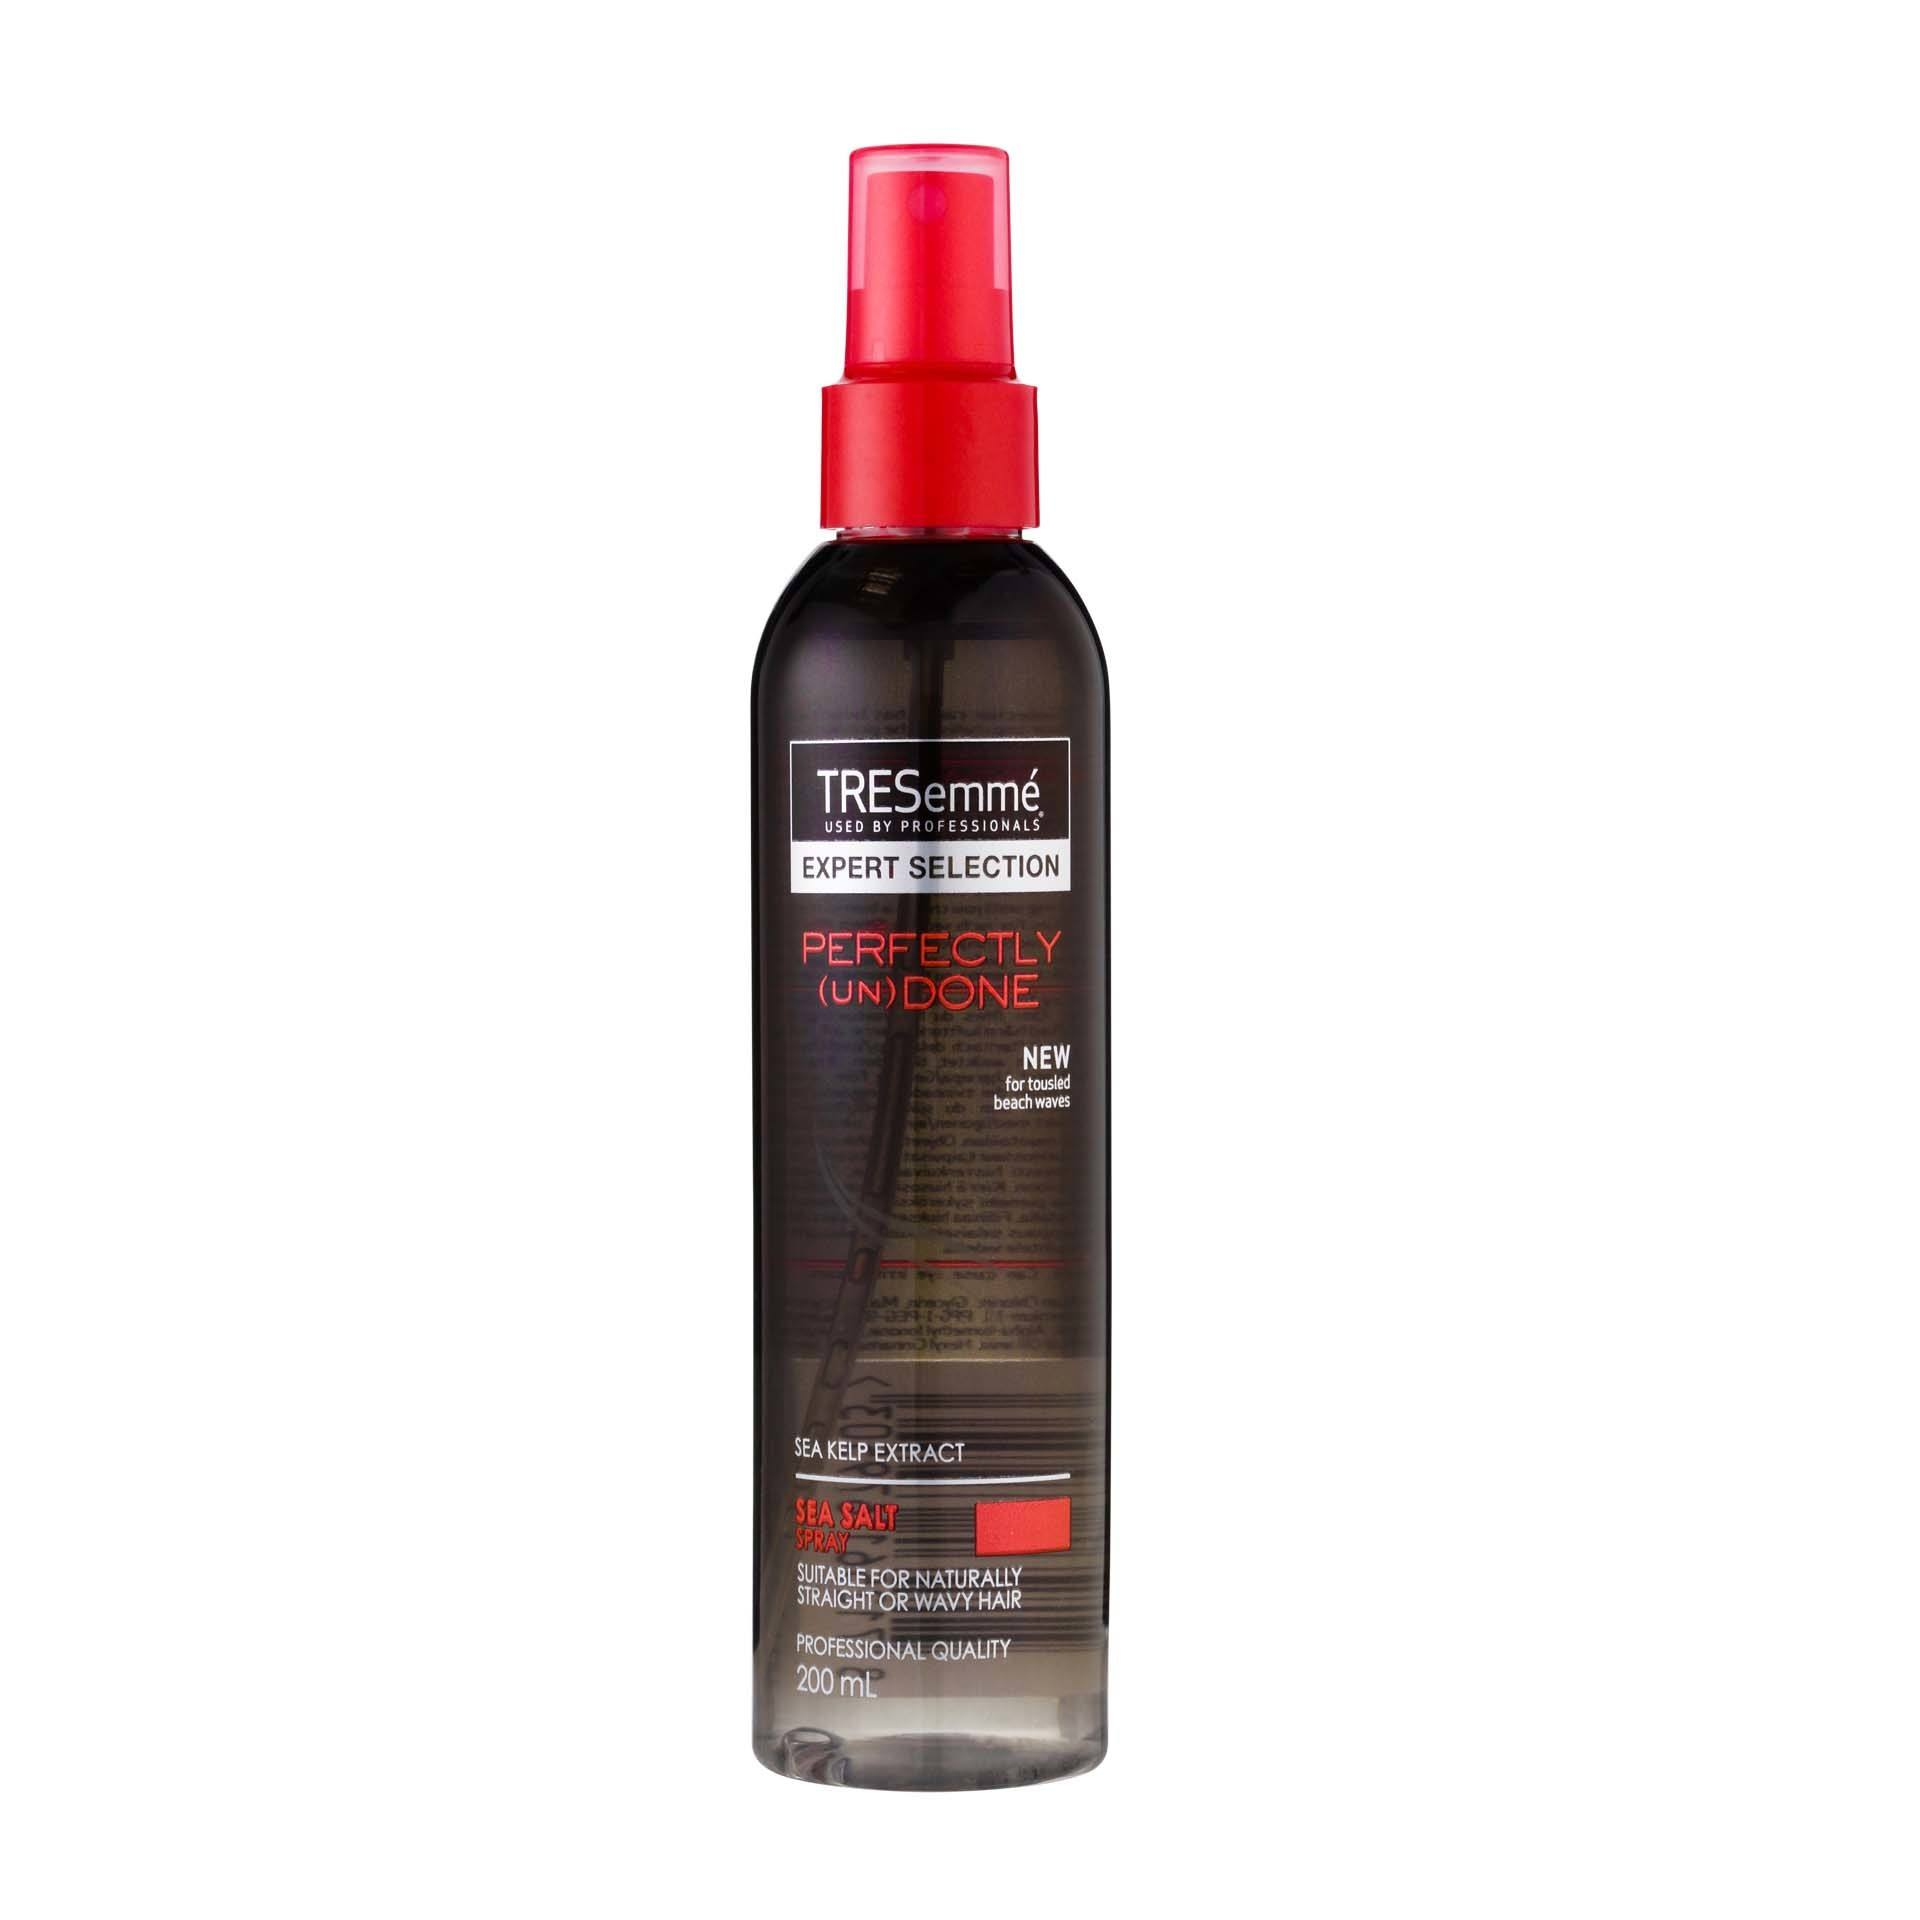 TRESemmé Perfectly (Un)Done Sea Salt Spray